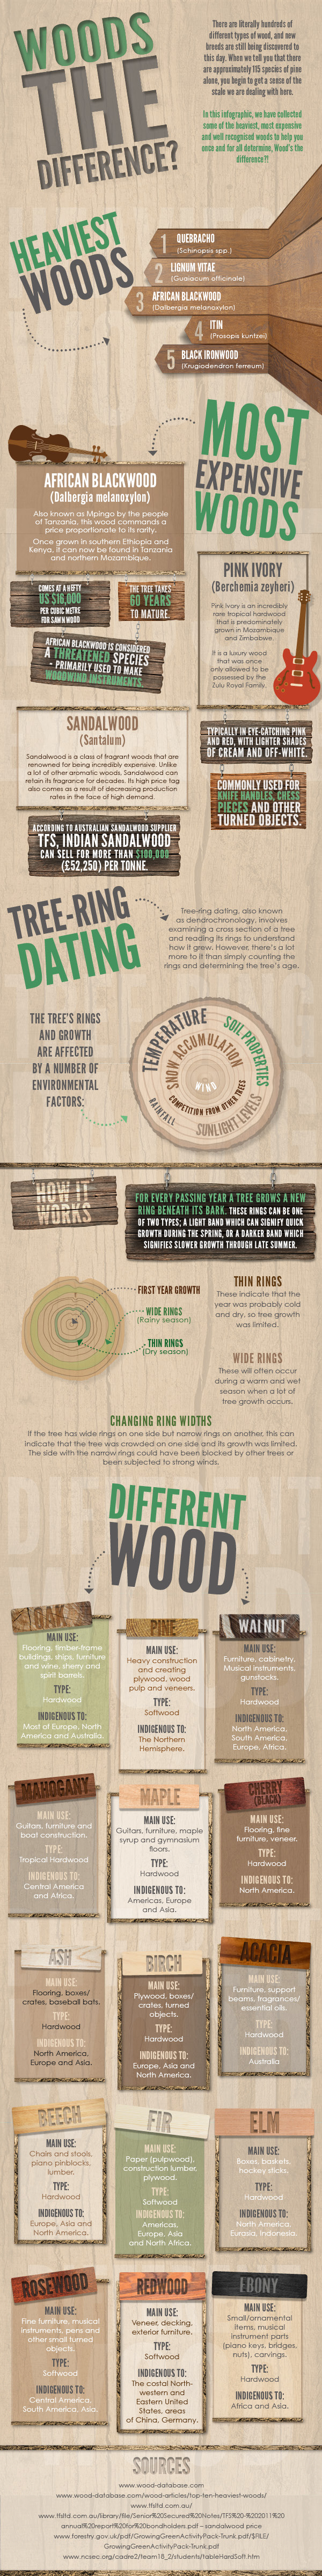 Wood Differences Infographic